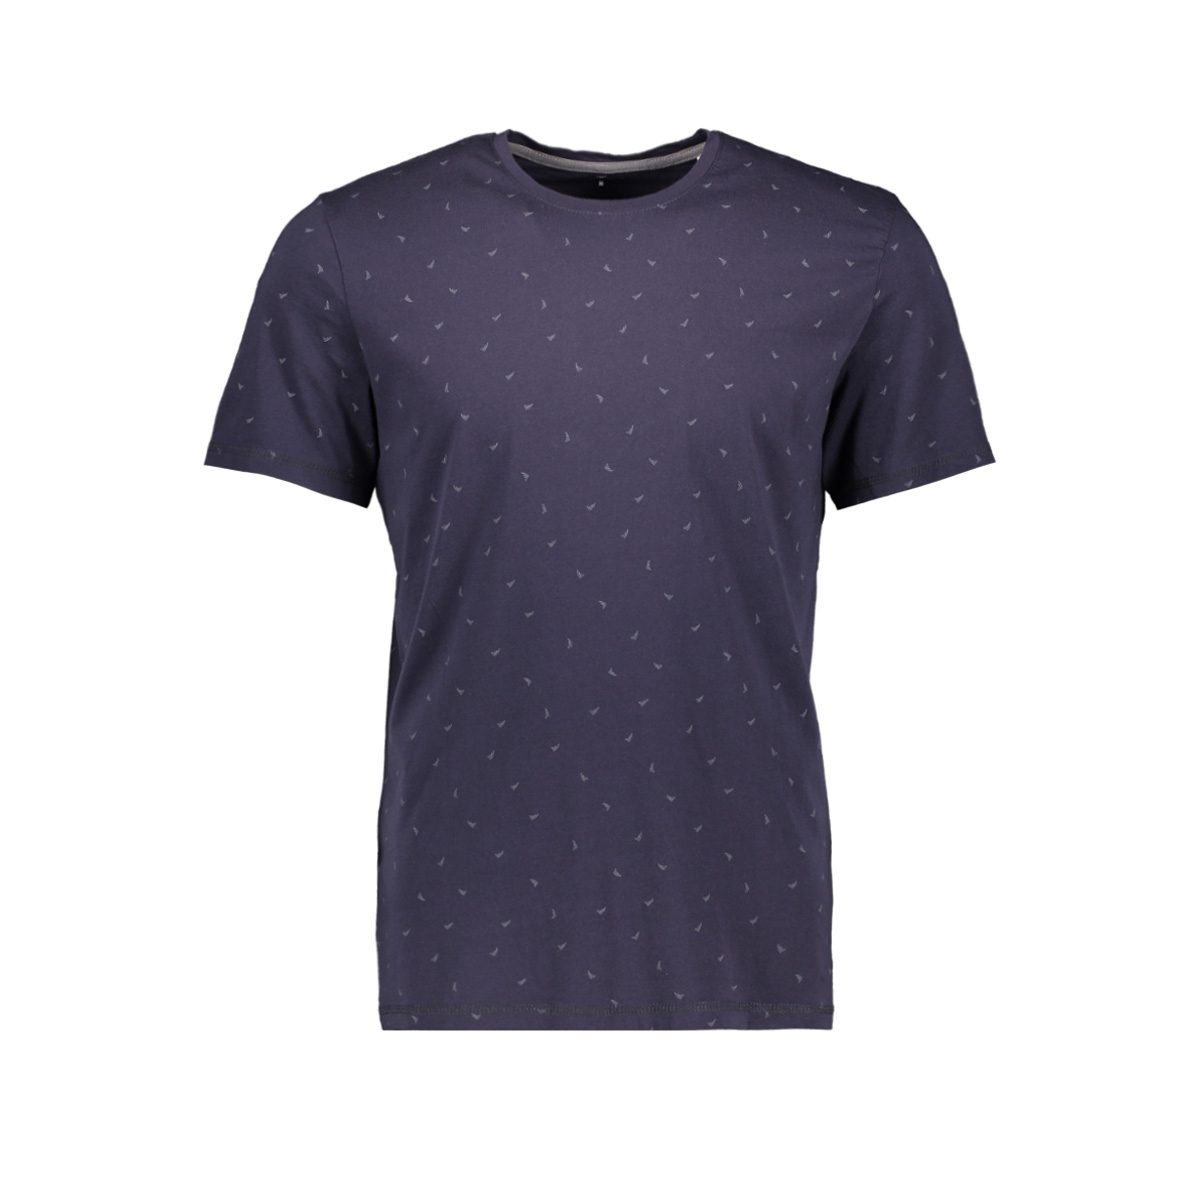 1008647xx10 tom tailor t-shirt 16167